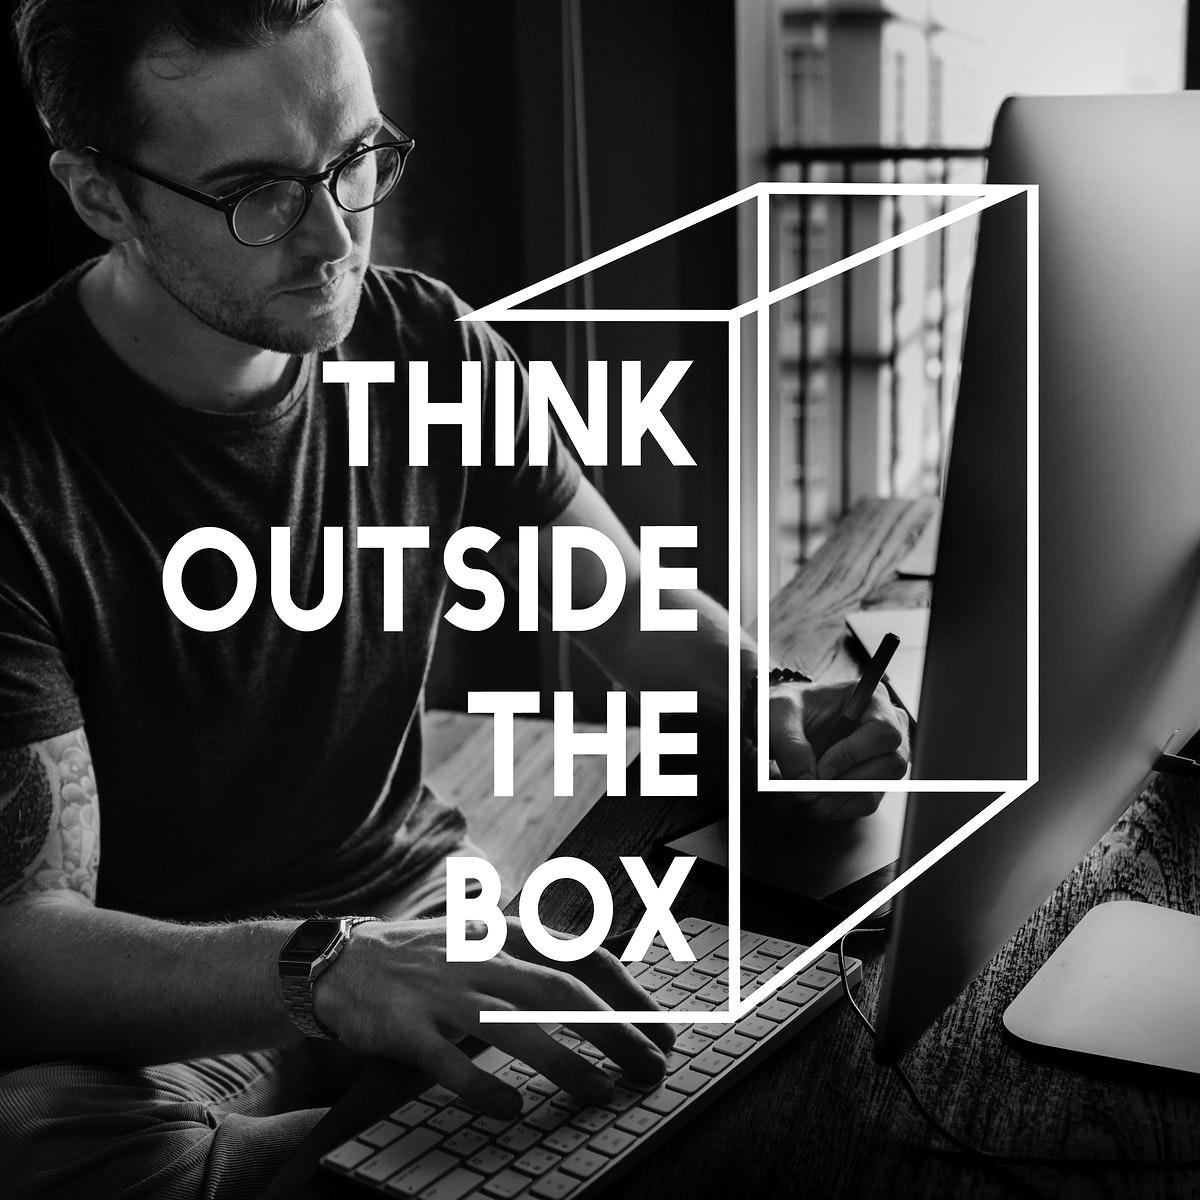 Think outside the box phrase on man working on computer background